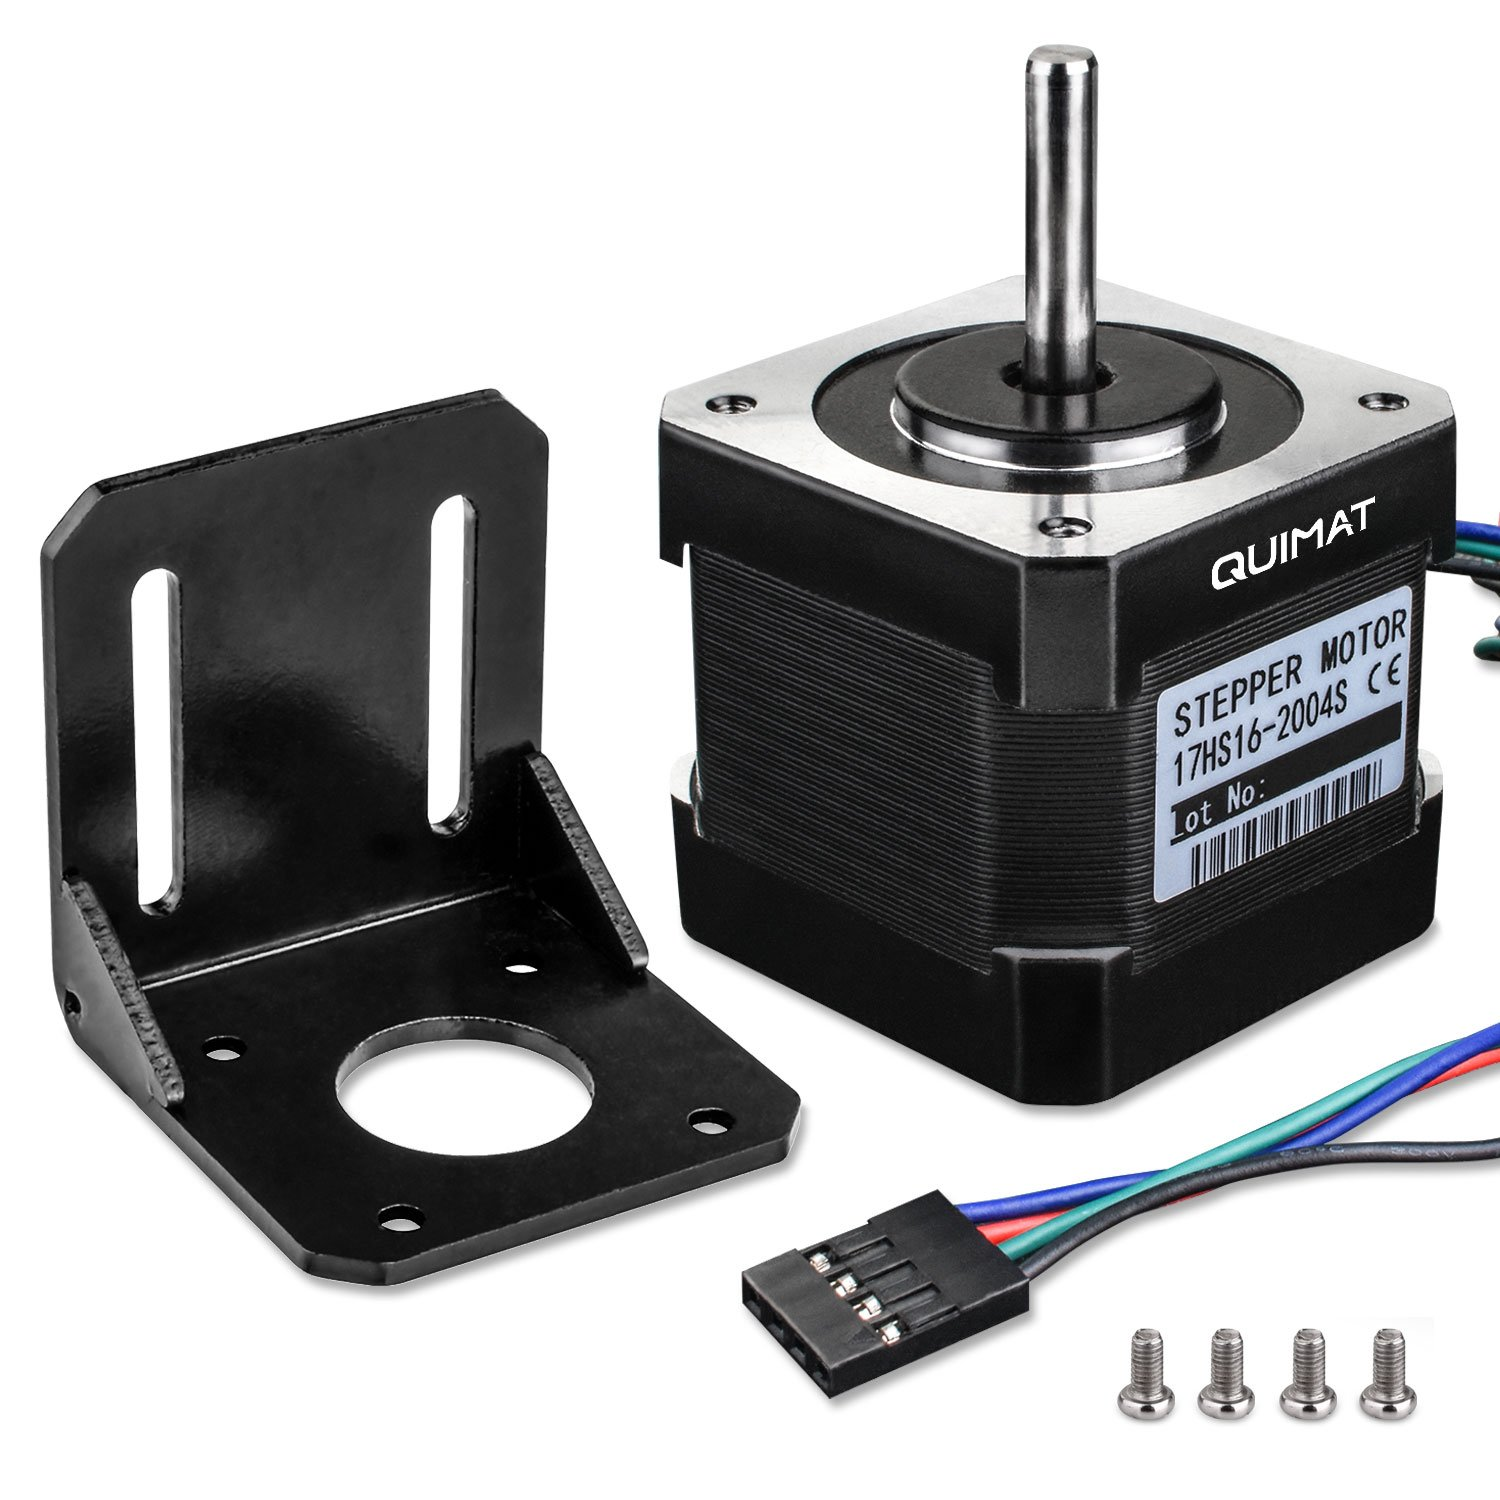 Quimat Nema 17 Stepper Motor, Stepper Motor Bipolar 2A 64oz.in(45Ncm) 38mm Body 4-lead w/1m Cable and Connector with Mounting Bracket for 3D Printer Hobby CNC